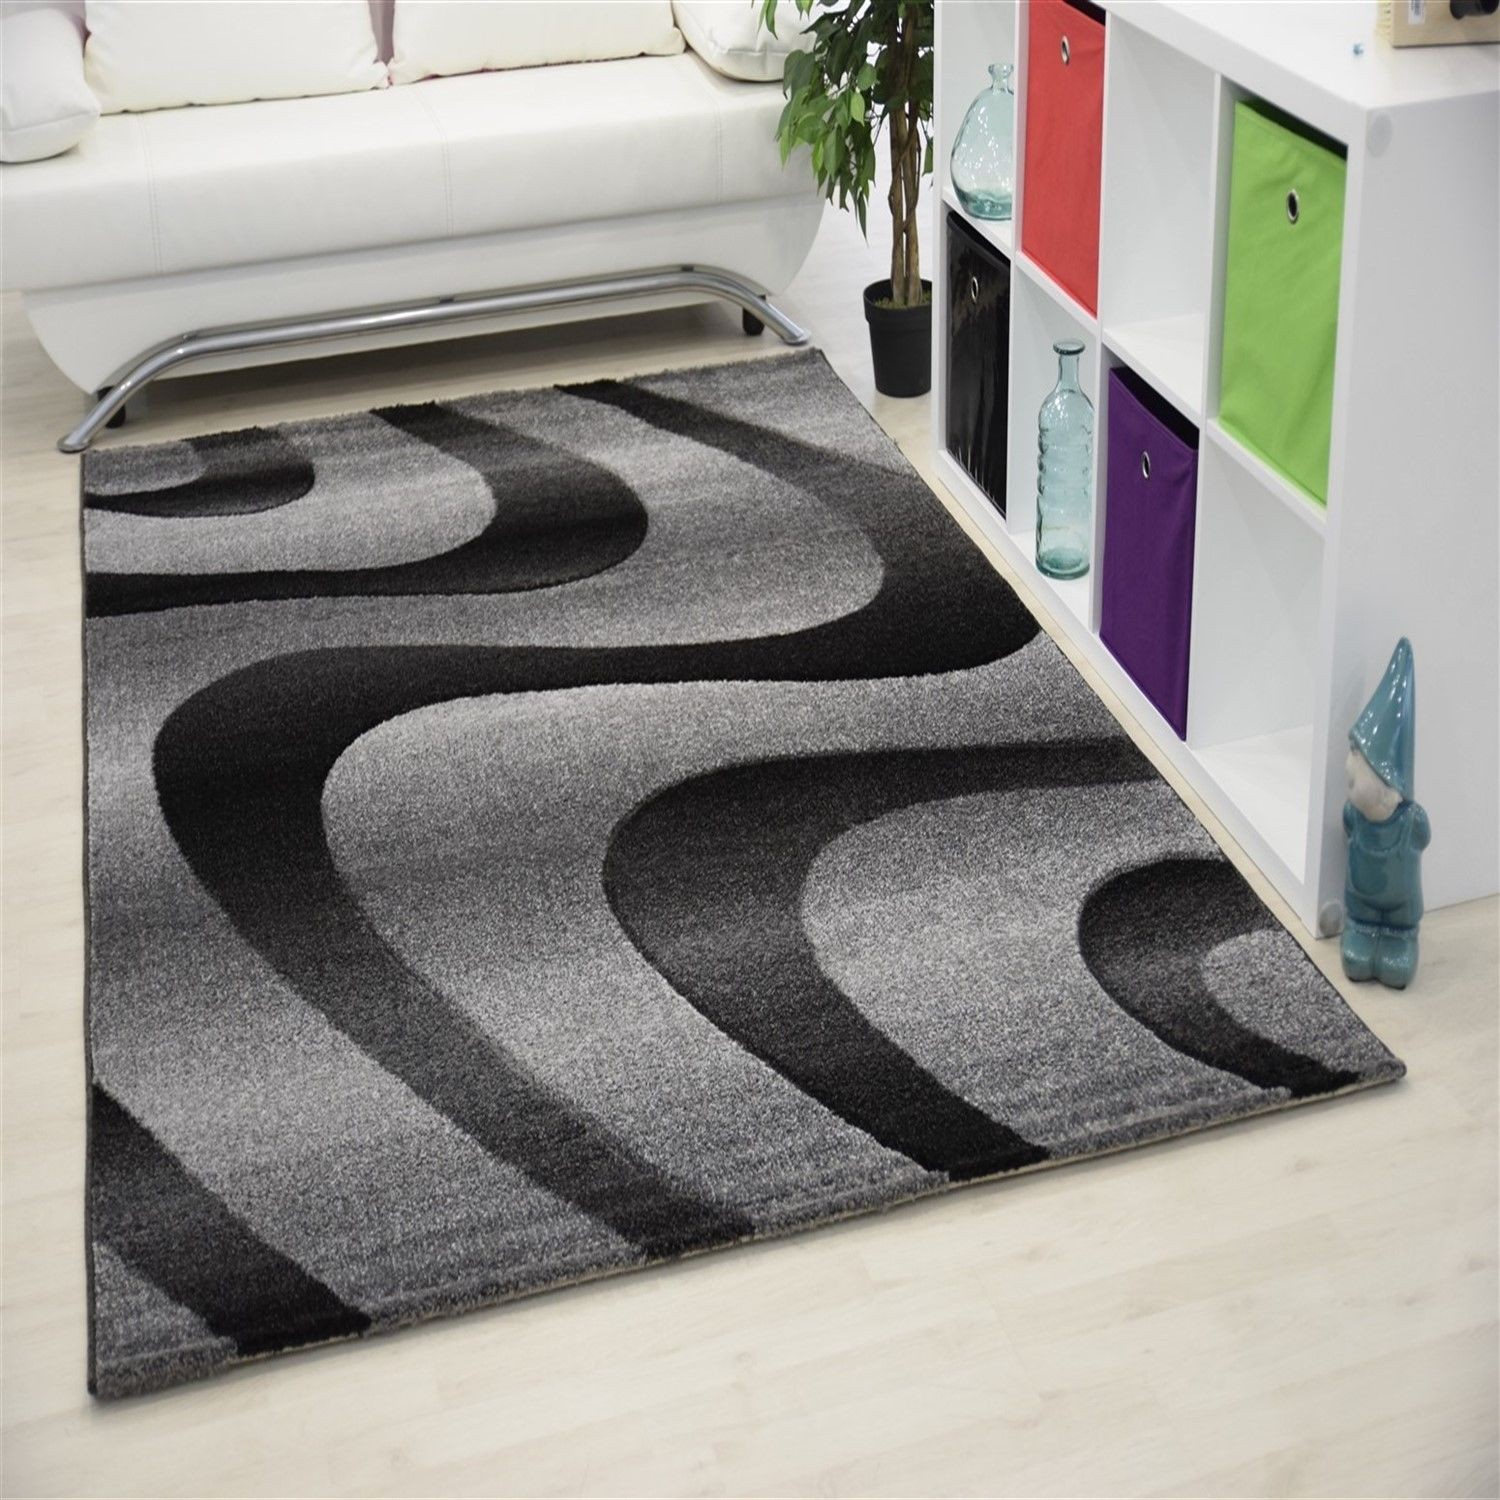 tapis pour salon id es de d coration int rieure french. Black Bedroom Furniture Sets. Home Design Ideas